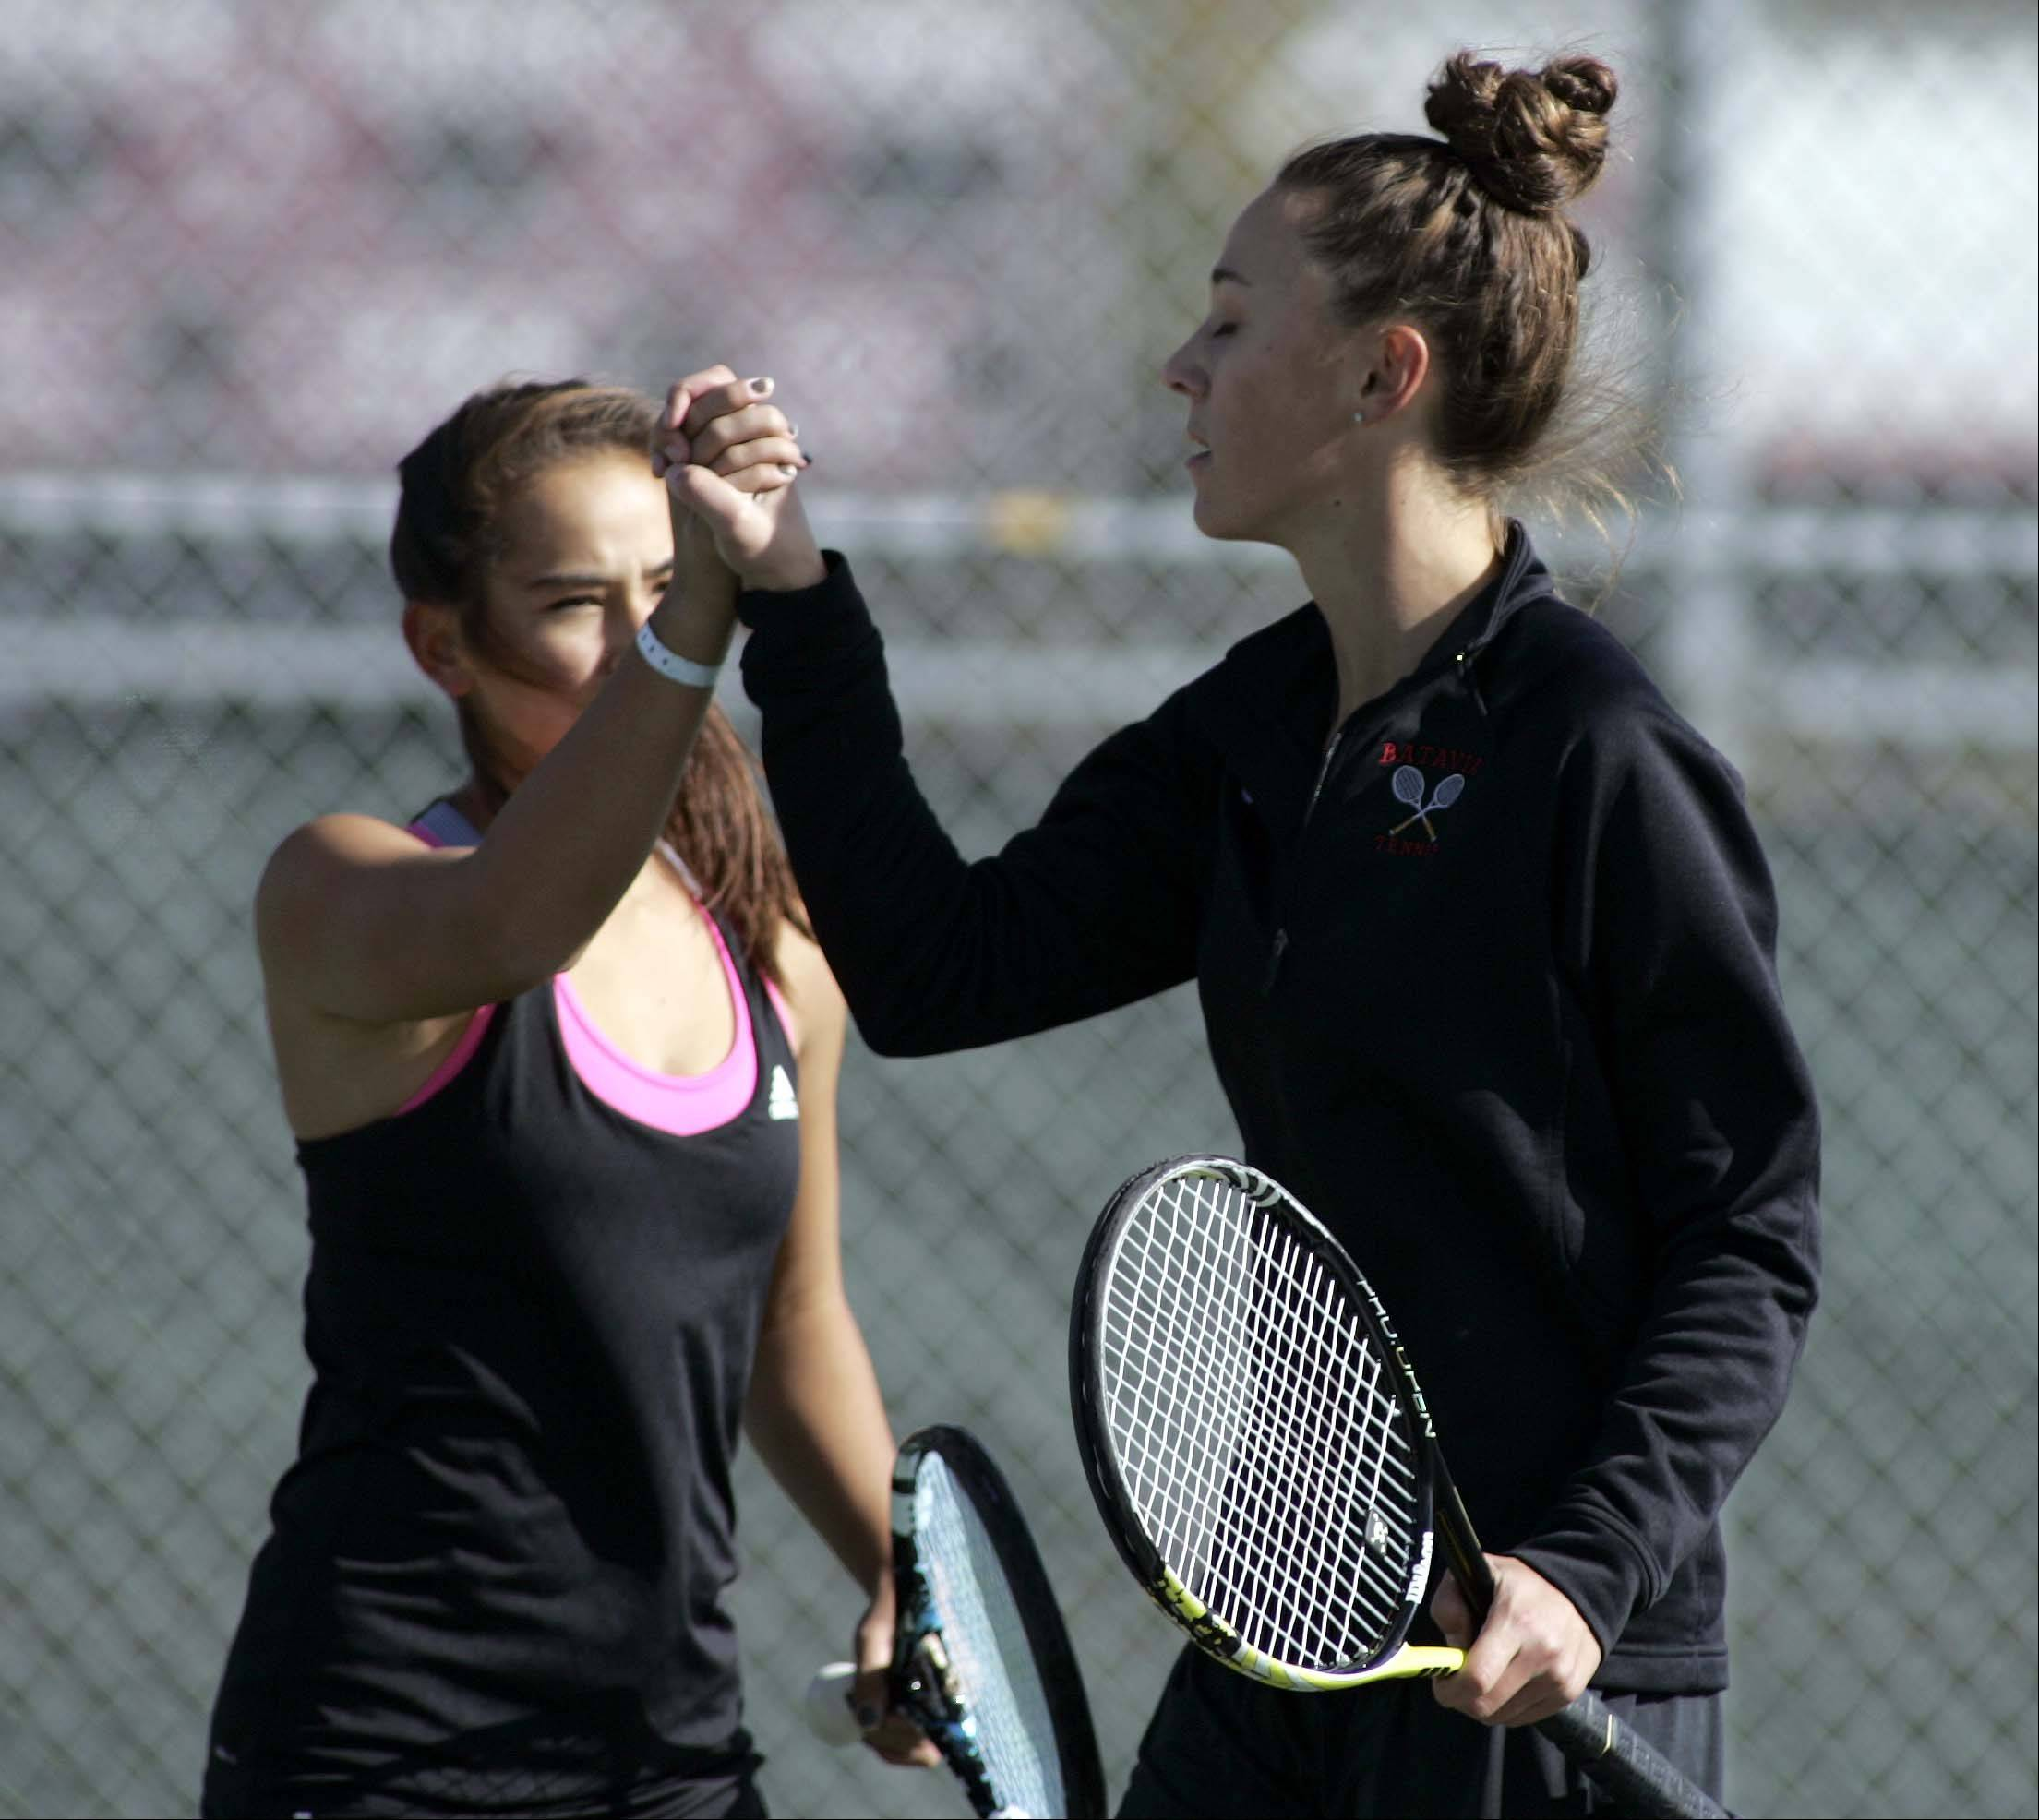 Brian Hill/bhill@dailyherald.com � Batavia's Jenny Mizikar, right, and Amelia Cogan, left, celebrate a point during doubles play at the Upstate Eight Rive tennis meet Saturday October 6, 2012 at Elgin High School.